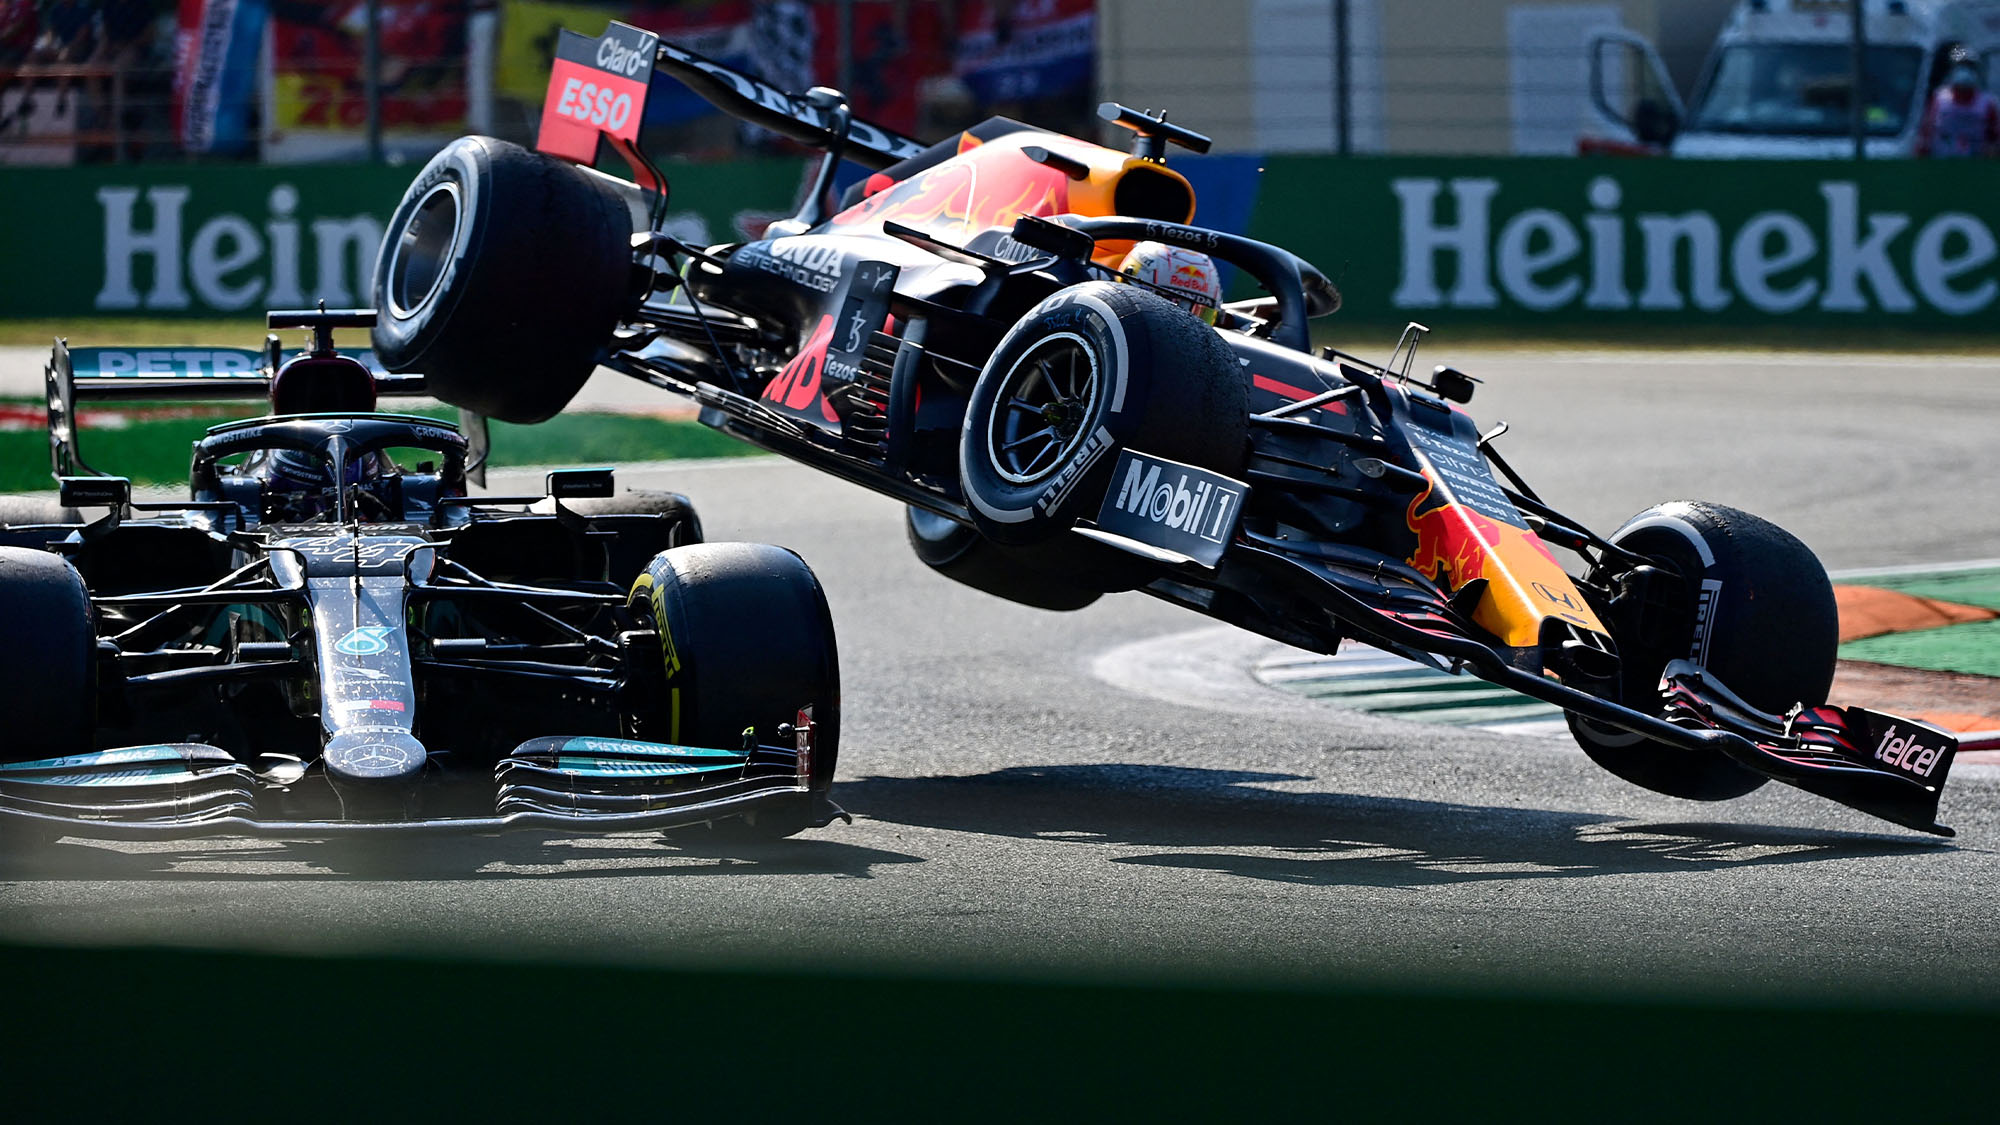 Max Verstappen launched into the air by Lewis Hamilton at Monza 2021